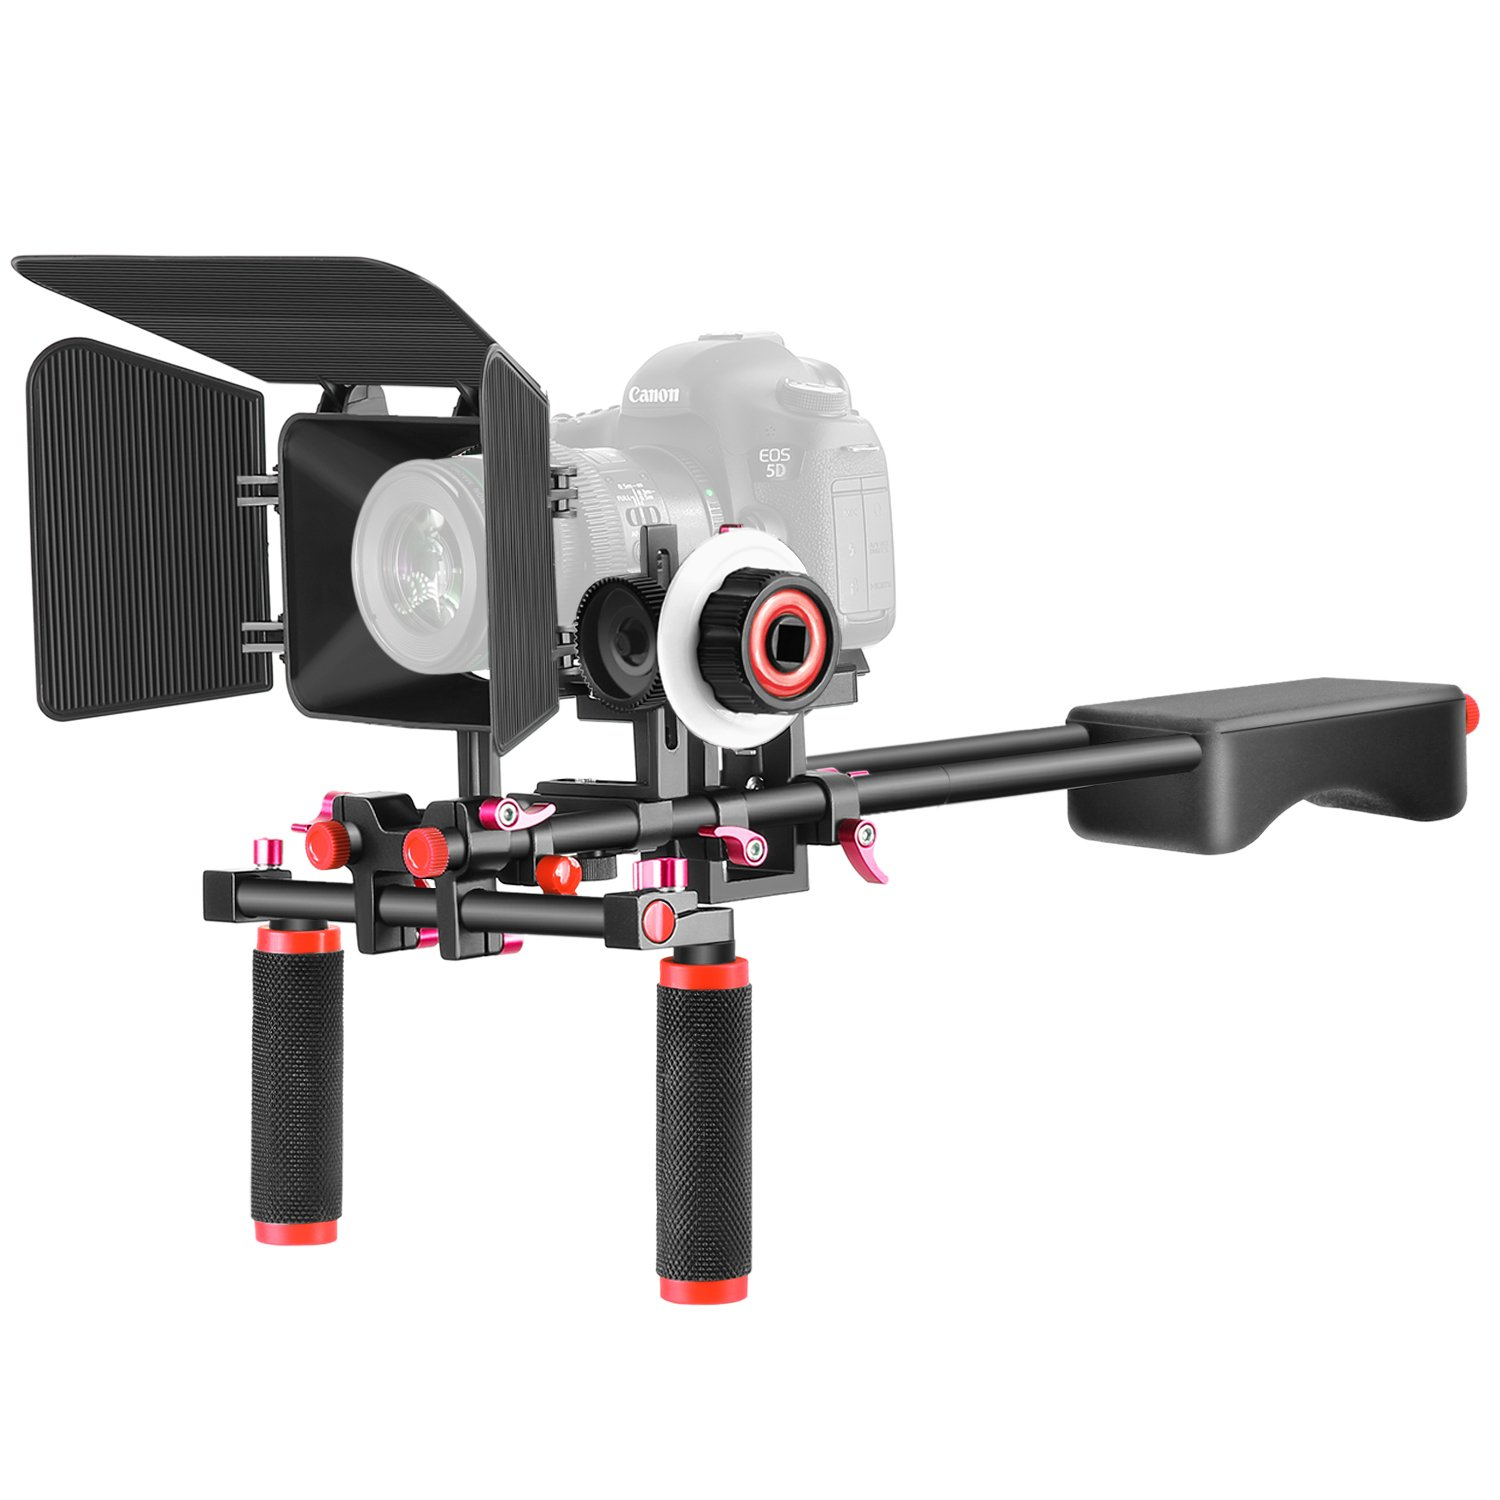 Neewer Aluminum Alloy Film Movie Video Making System Kit for Canon Nikon Sony and Other DSLR Cameras Video Camcorders, Includes: (1) Shoulder Rig, (1) Follow Focus and (1) Matte Box (Black+Red) by Neewer